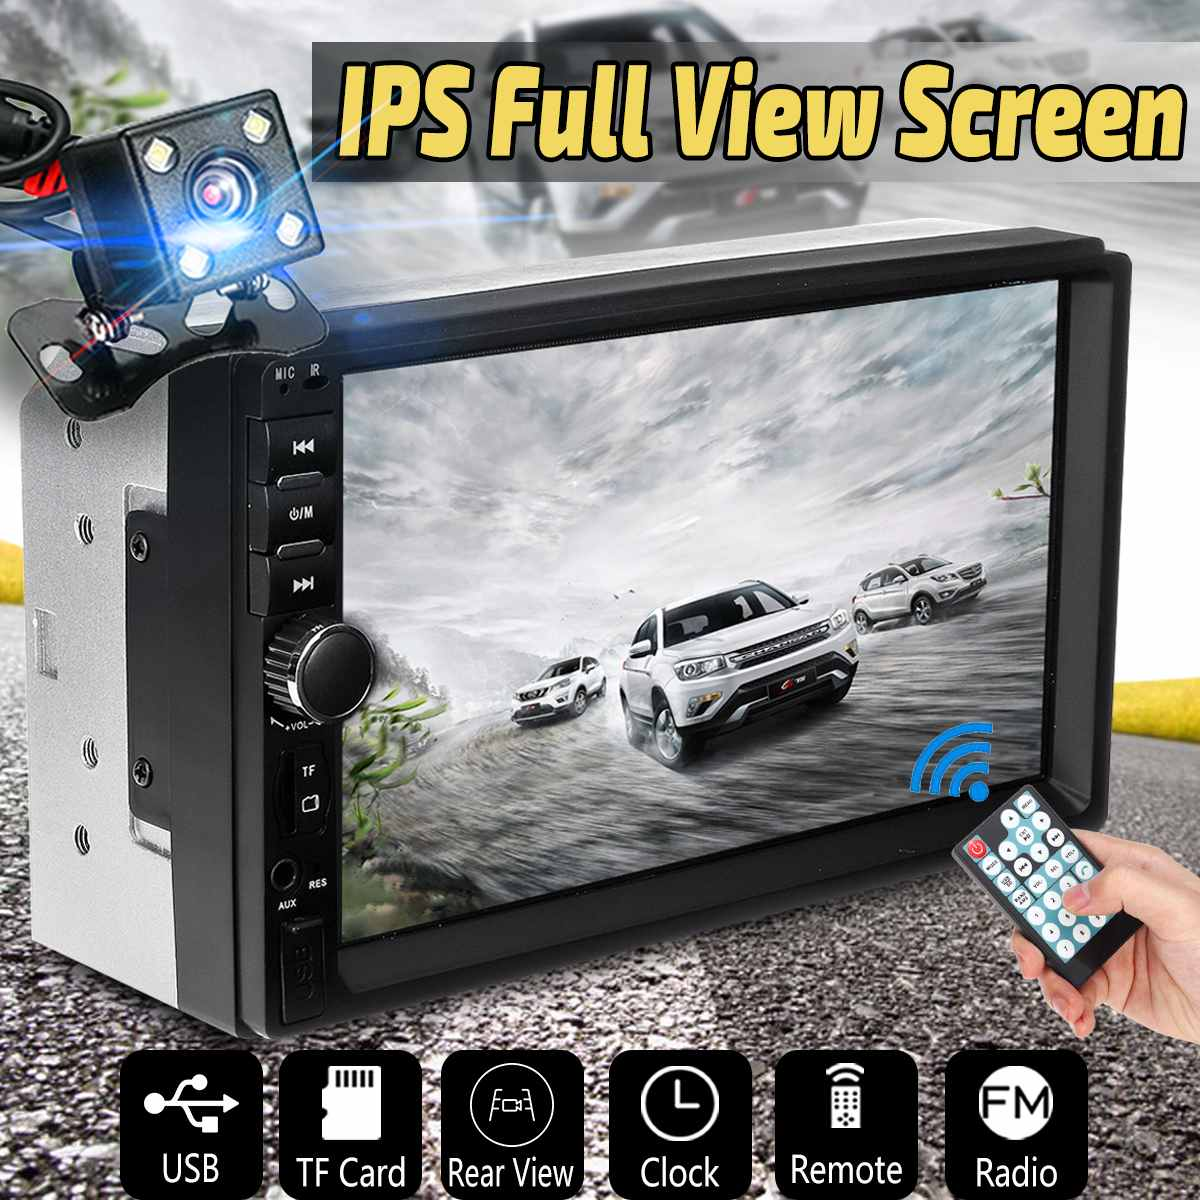 7 IPS Full View Car Radio bluetooth Car MP5 Player 2 Din Touch Screen Autoradio Auto Multimedia Player 1080P USB FM AUX7 IPS Full View Car Radio bluetooth Car MP5 Player 2 Din Touch Screen Autoradio Auto Multimedia Player 1080P USB FM AUX